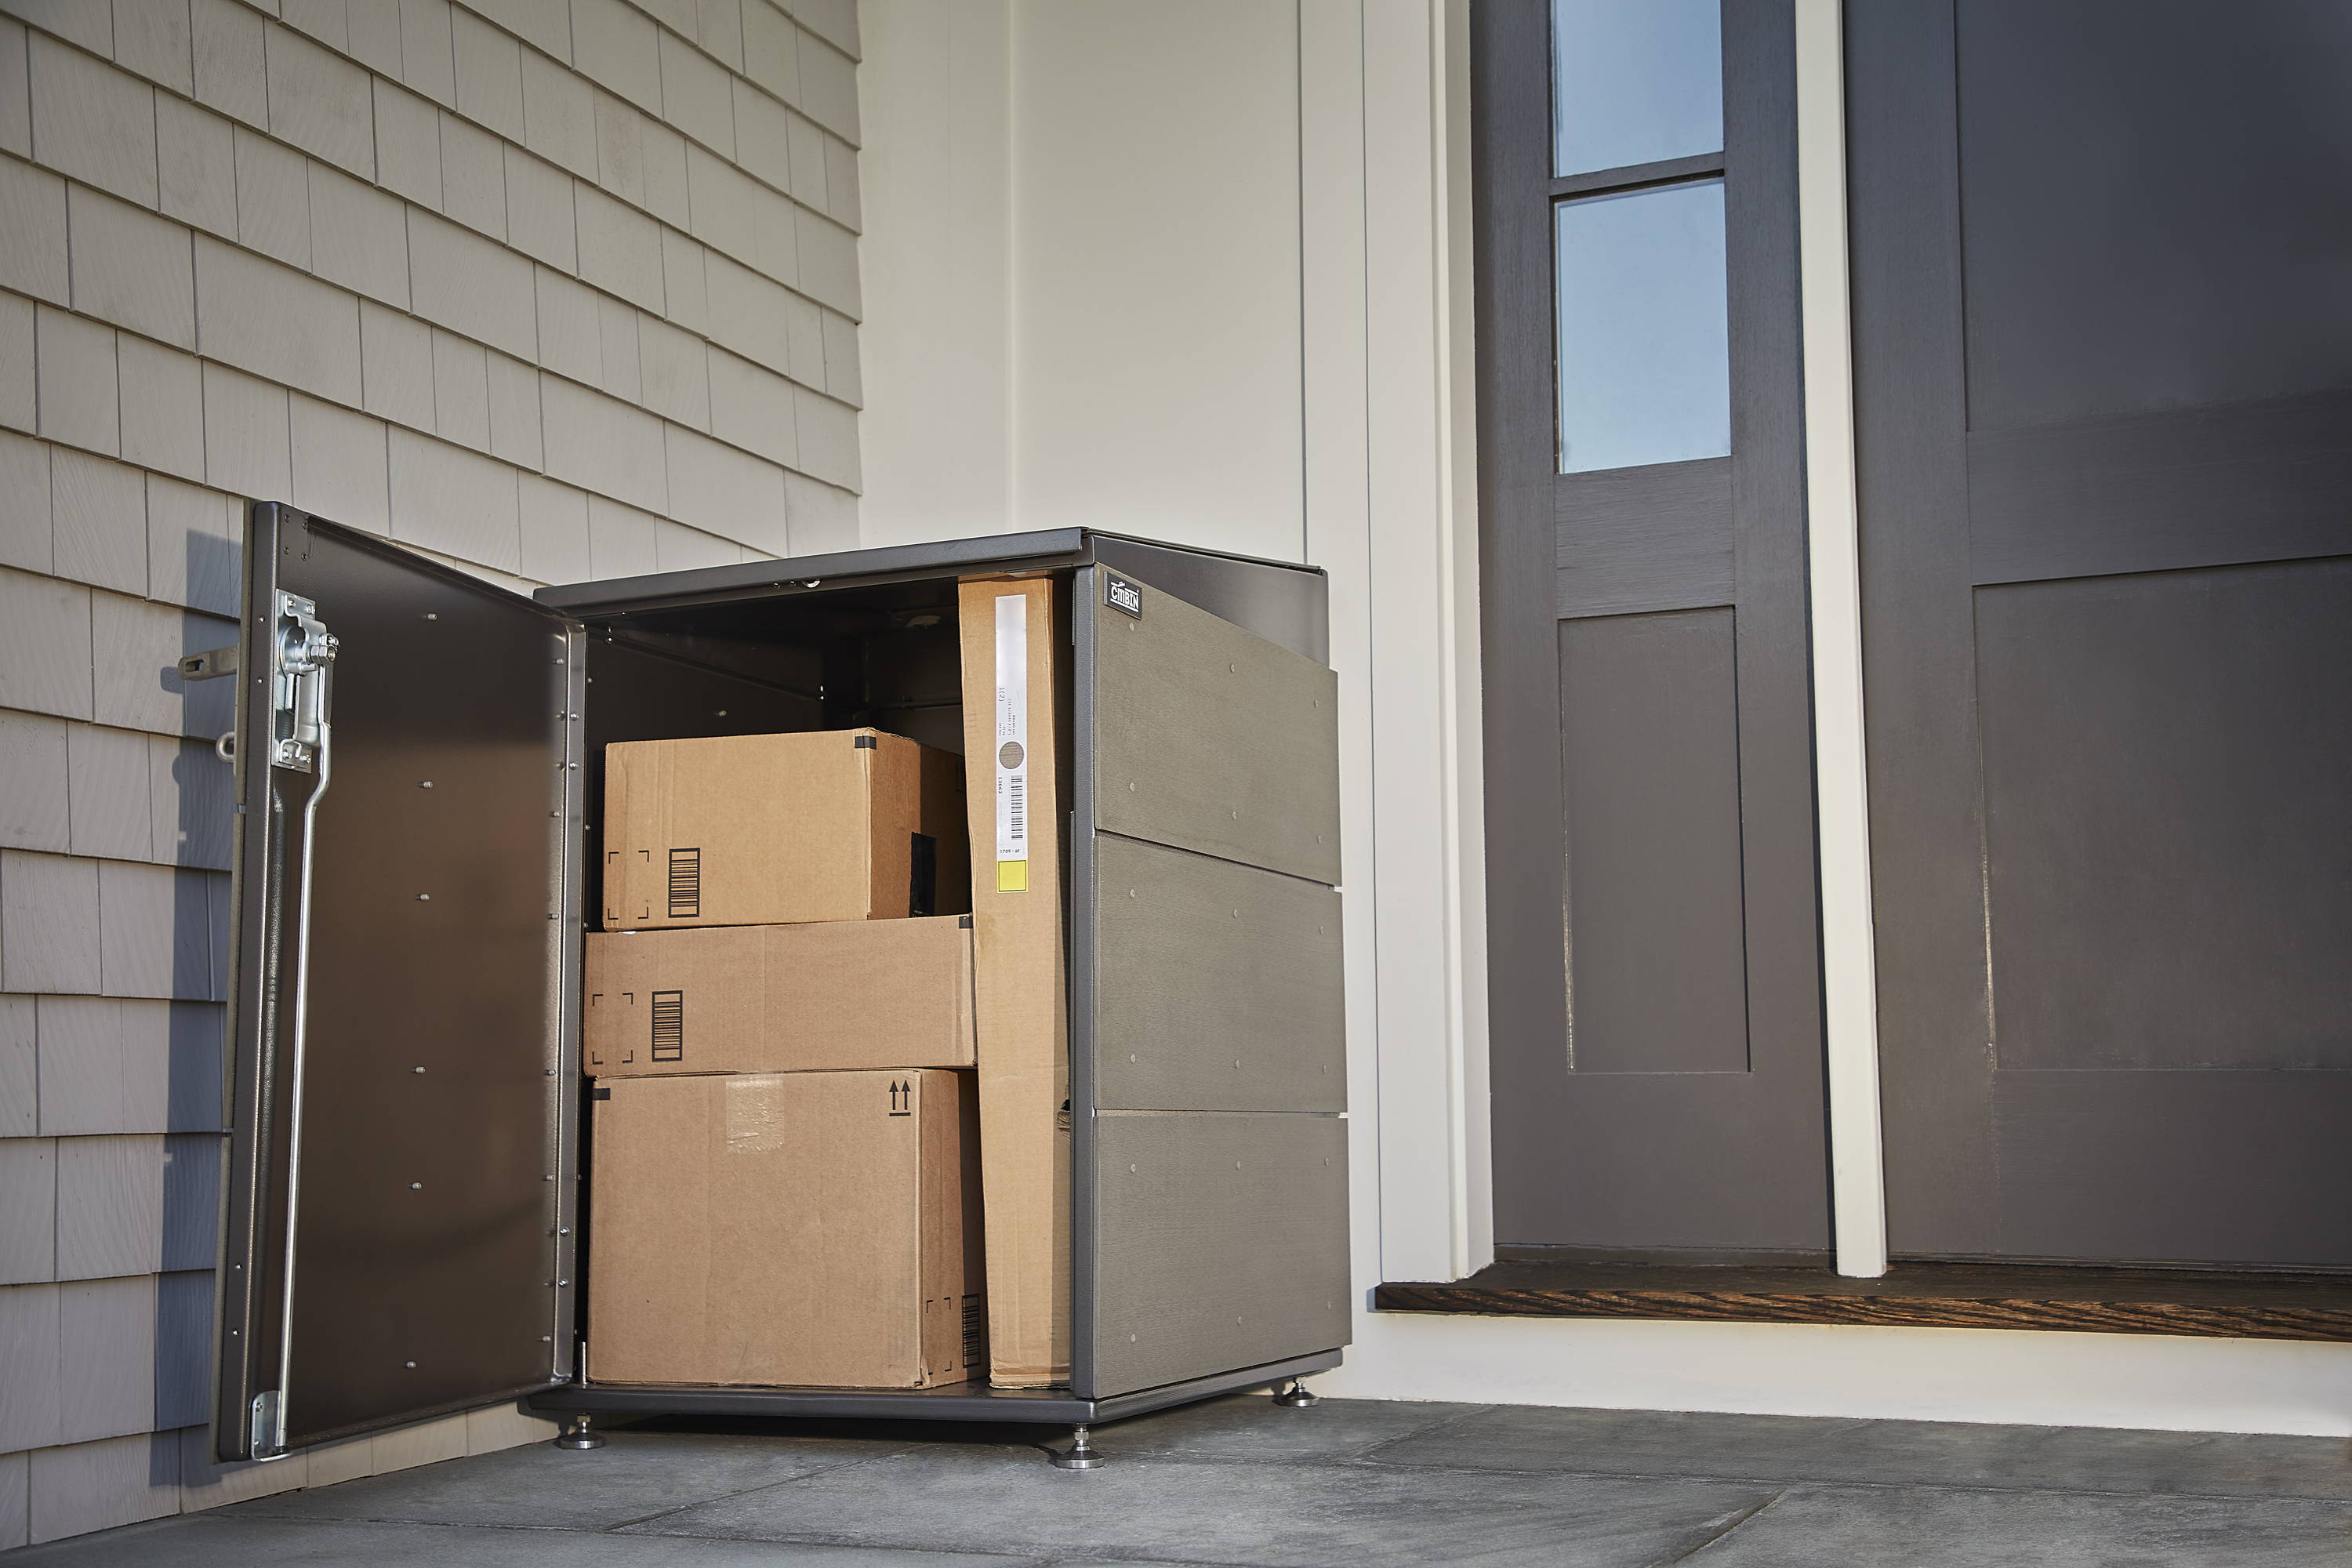 Easy To Use And Durable Parcelbin Is A Lockable Secure Package Drop Box For Your Parcels Deliveries Offs Storage Needs